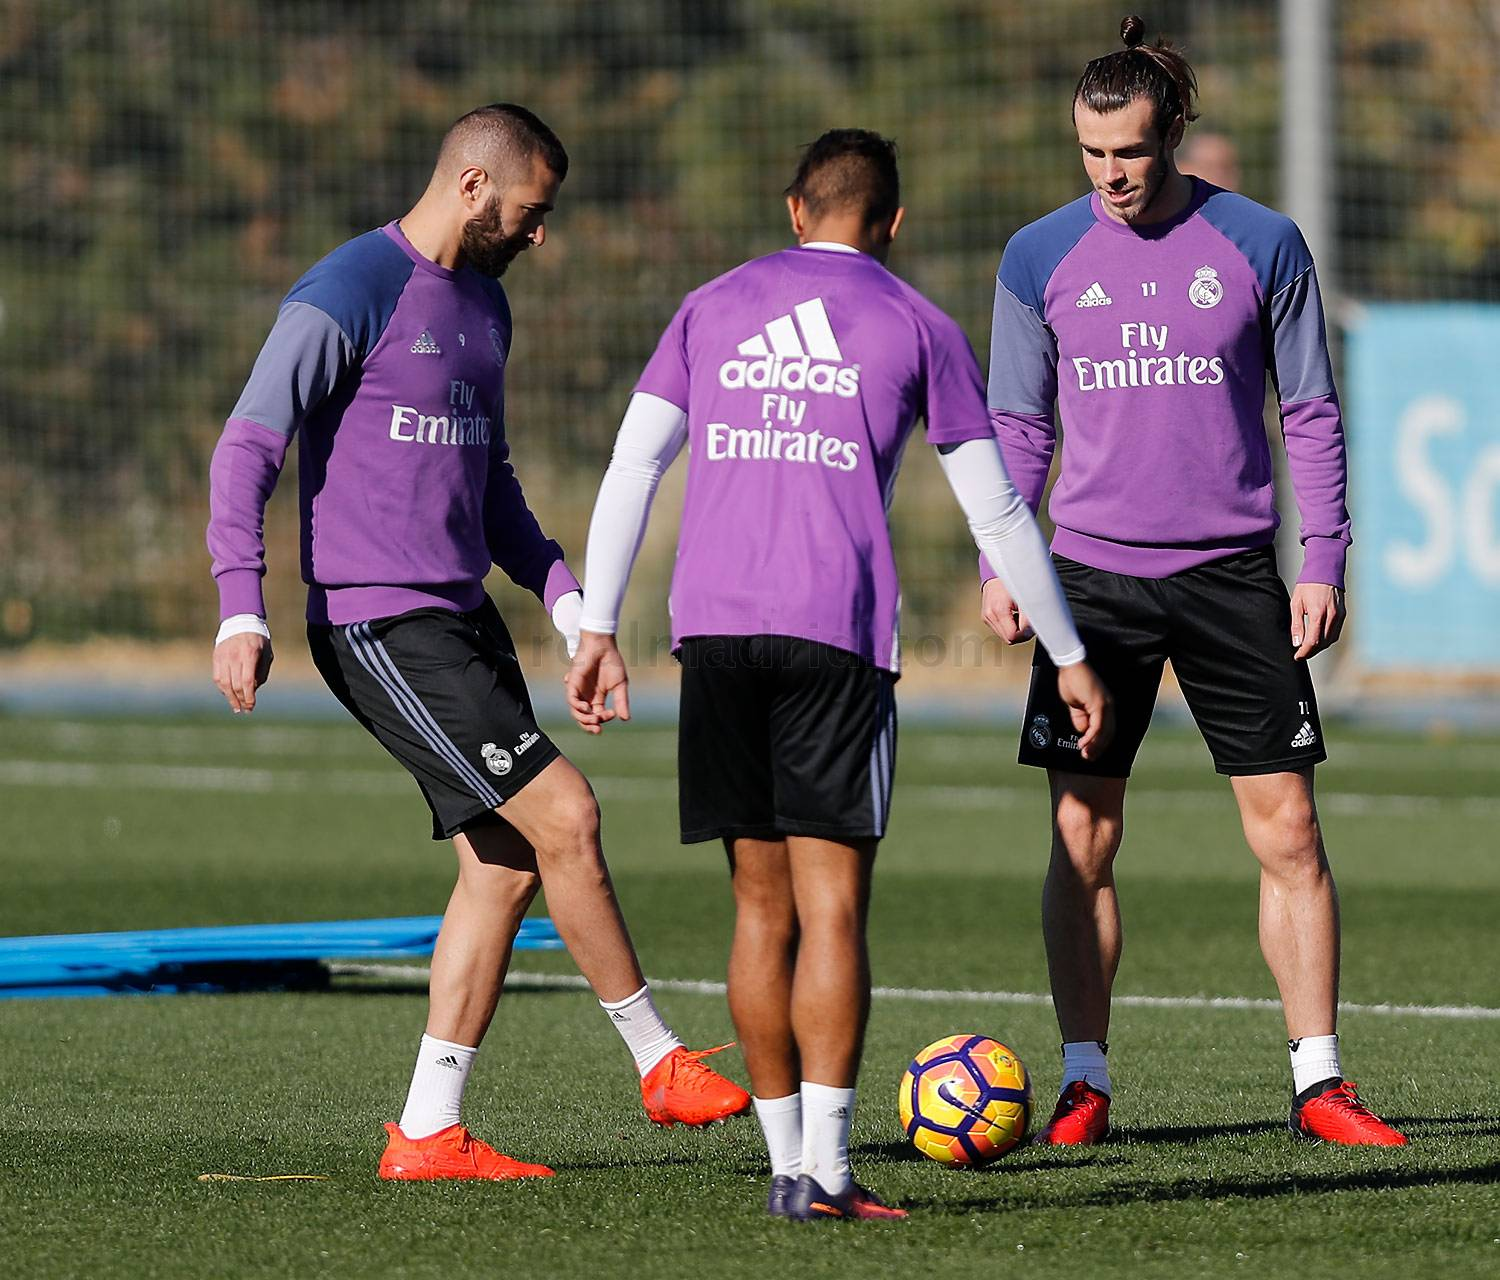 Real Madrid - Entrenamiento del Real Madrid - 17-11-2016